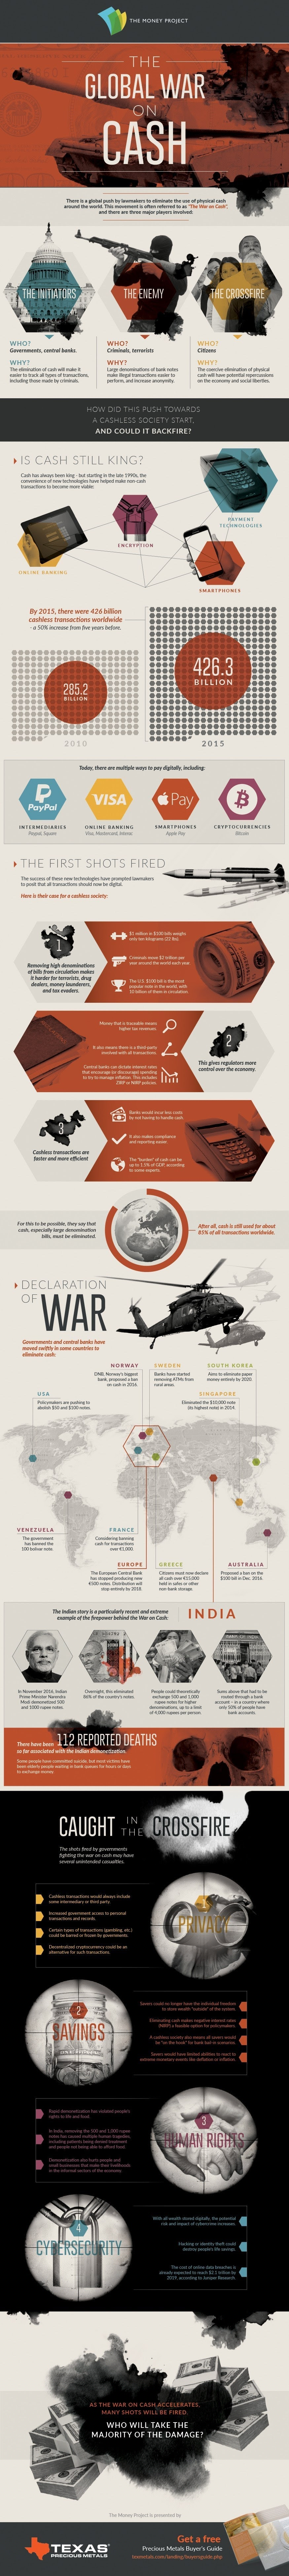 The Global War on Cash #Infographic